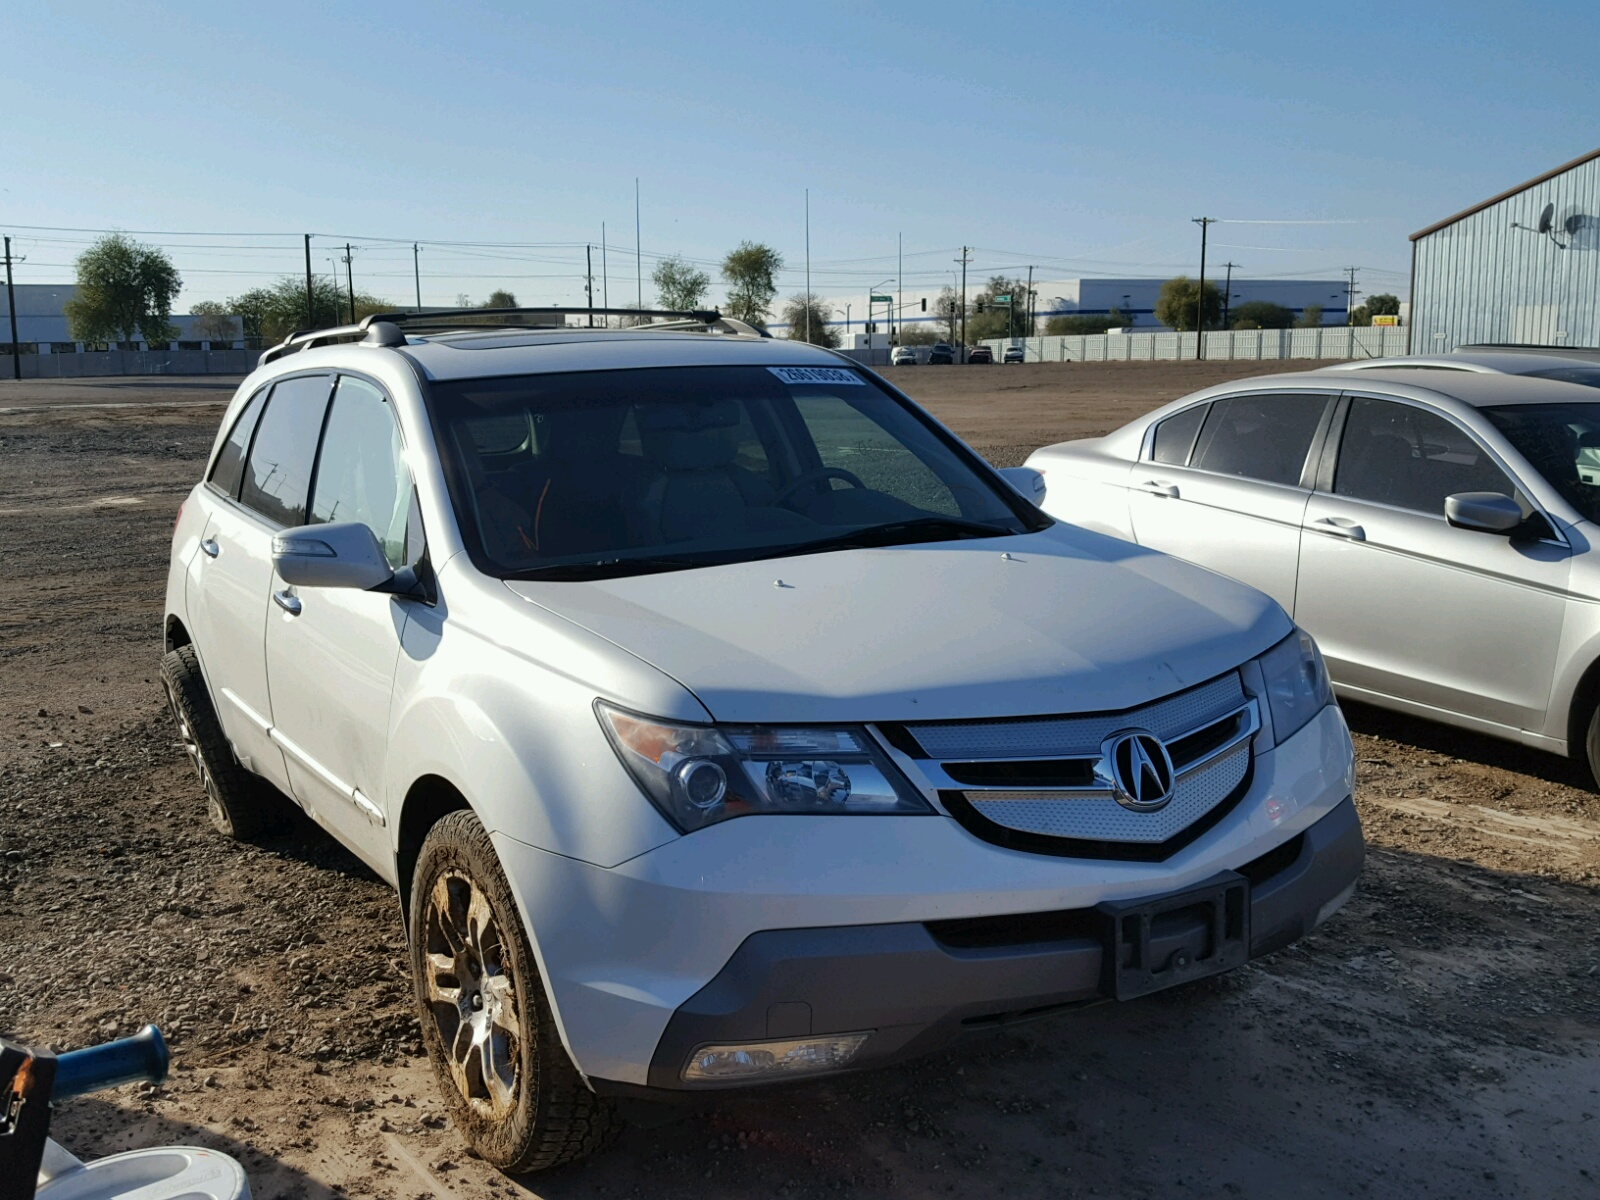 for ex awd pilot acura reviews cargurus honda to sale user compared cars pic mdx